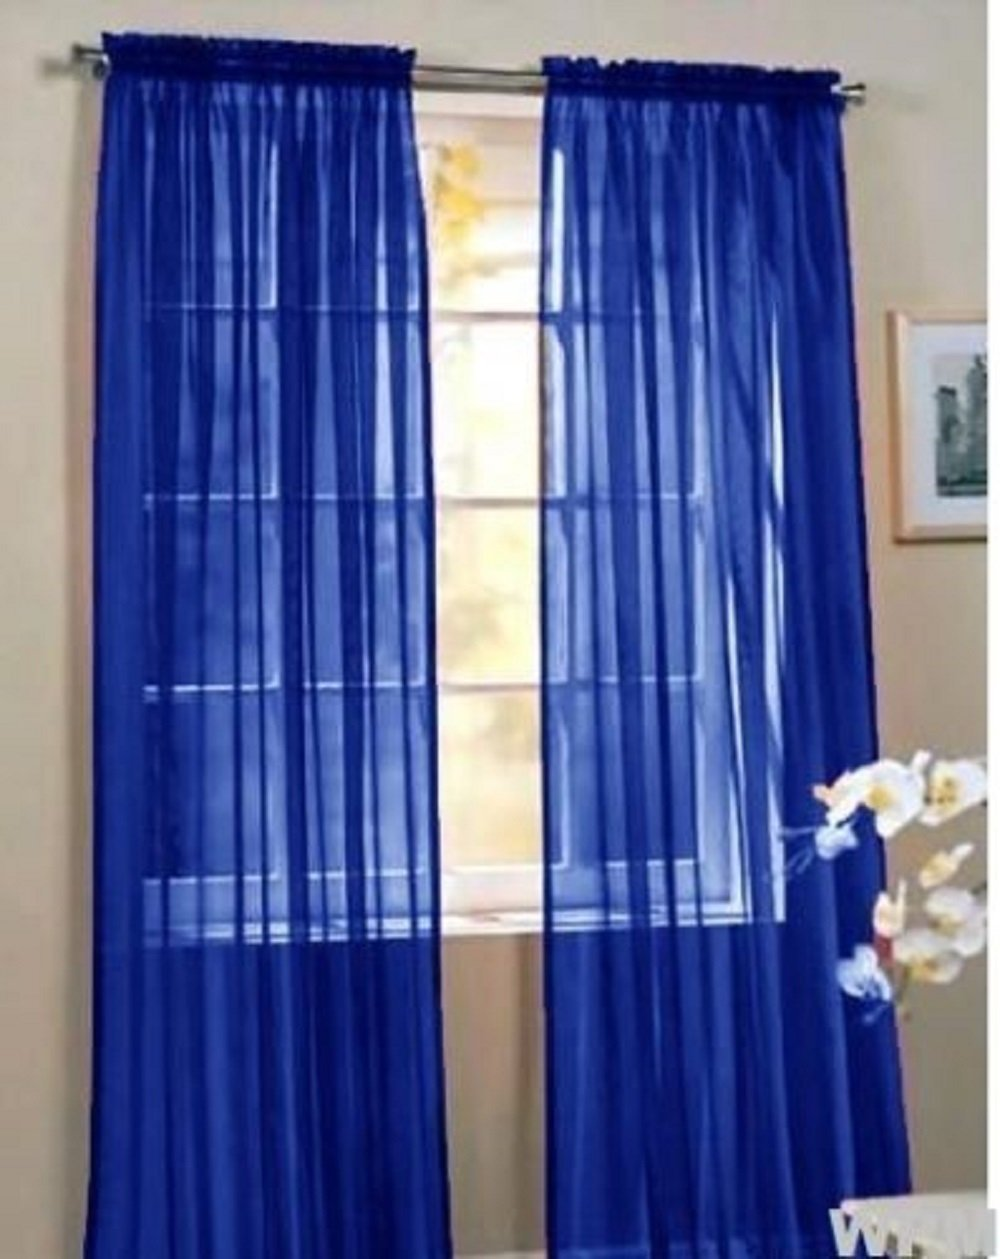 2 Piece Beautiful Sheer Window Royal Blue Elegance Curtains Drape Panels Treatment 60w X 84l Amazonca Home Kitchen